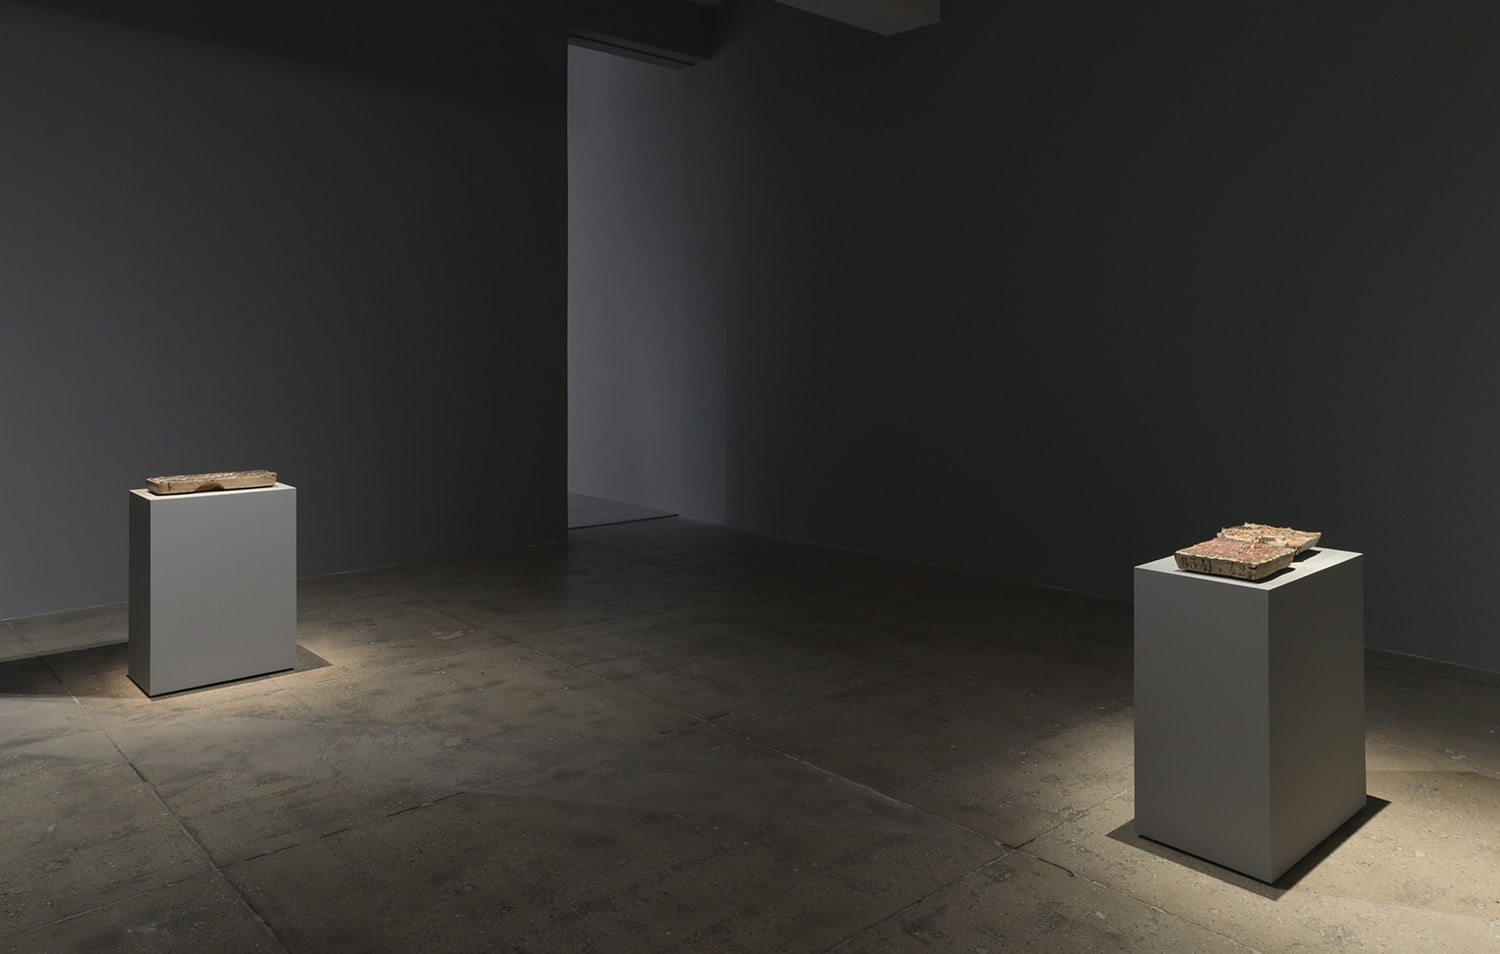 2 grey pedestals spotlit in a grey room displaying flat objects.